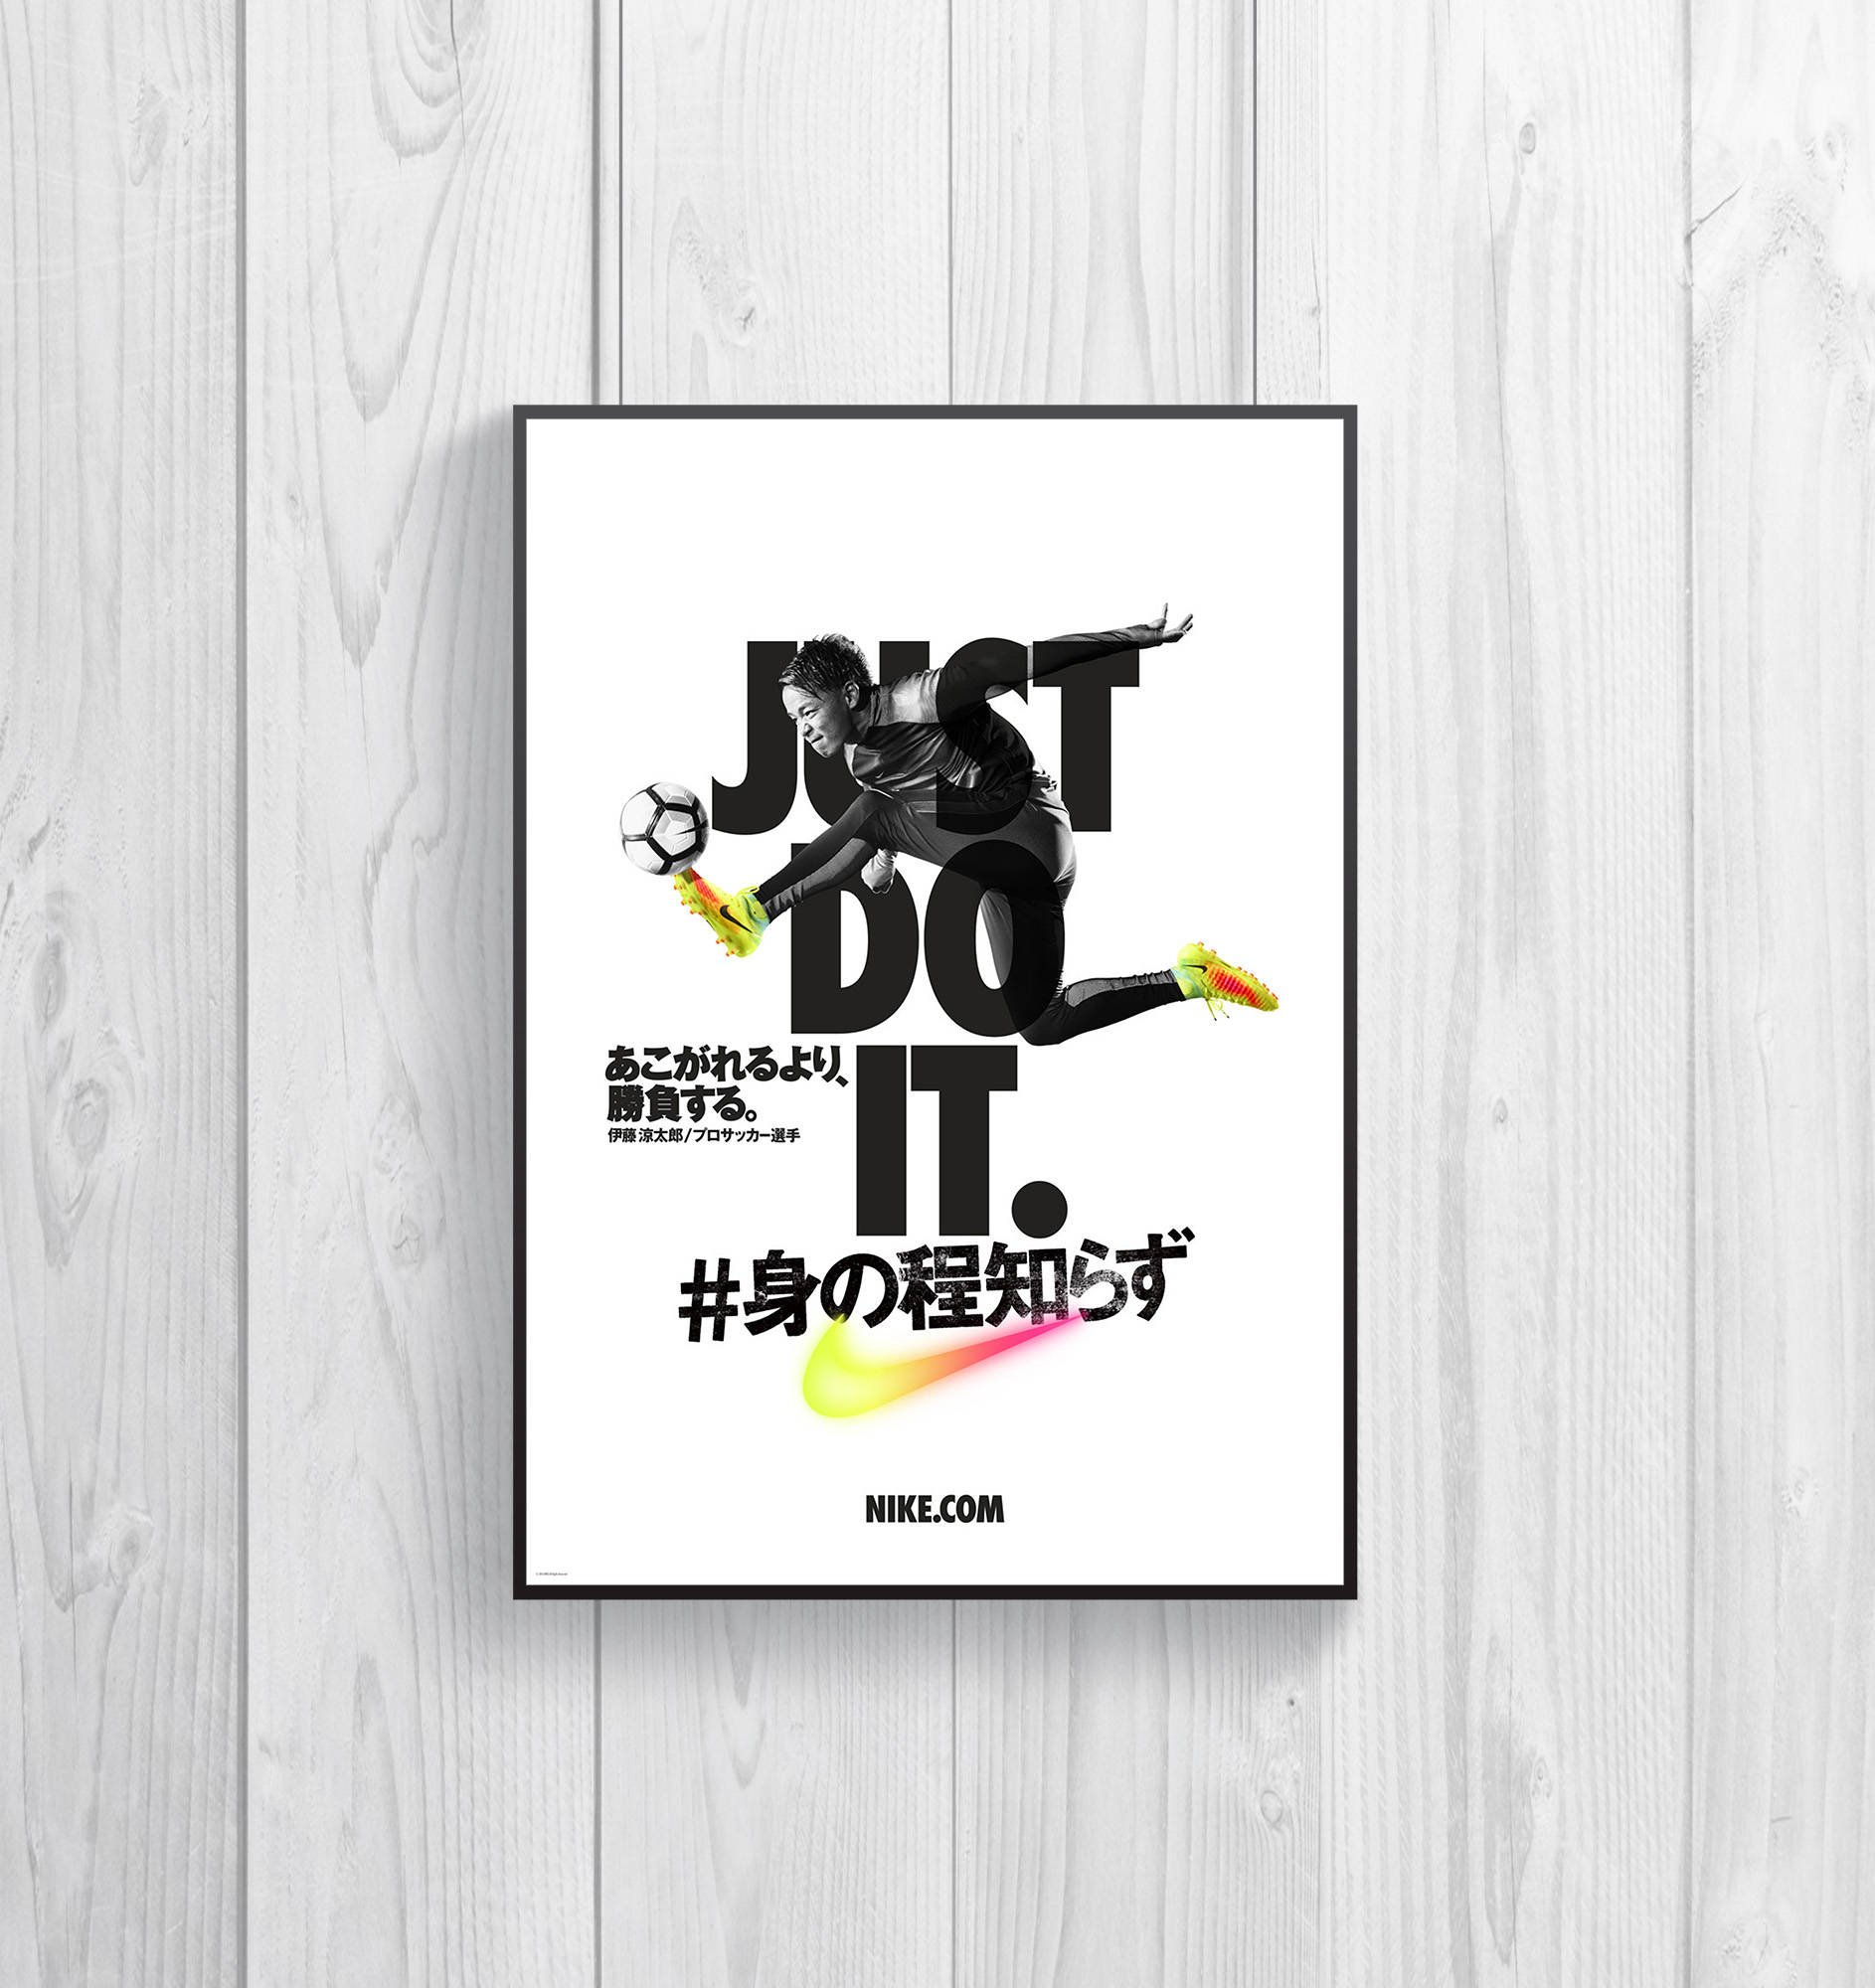 Nike Just Do It Minimalist Poster Example4